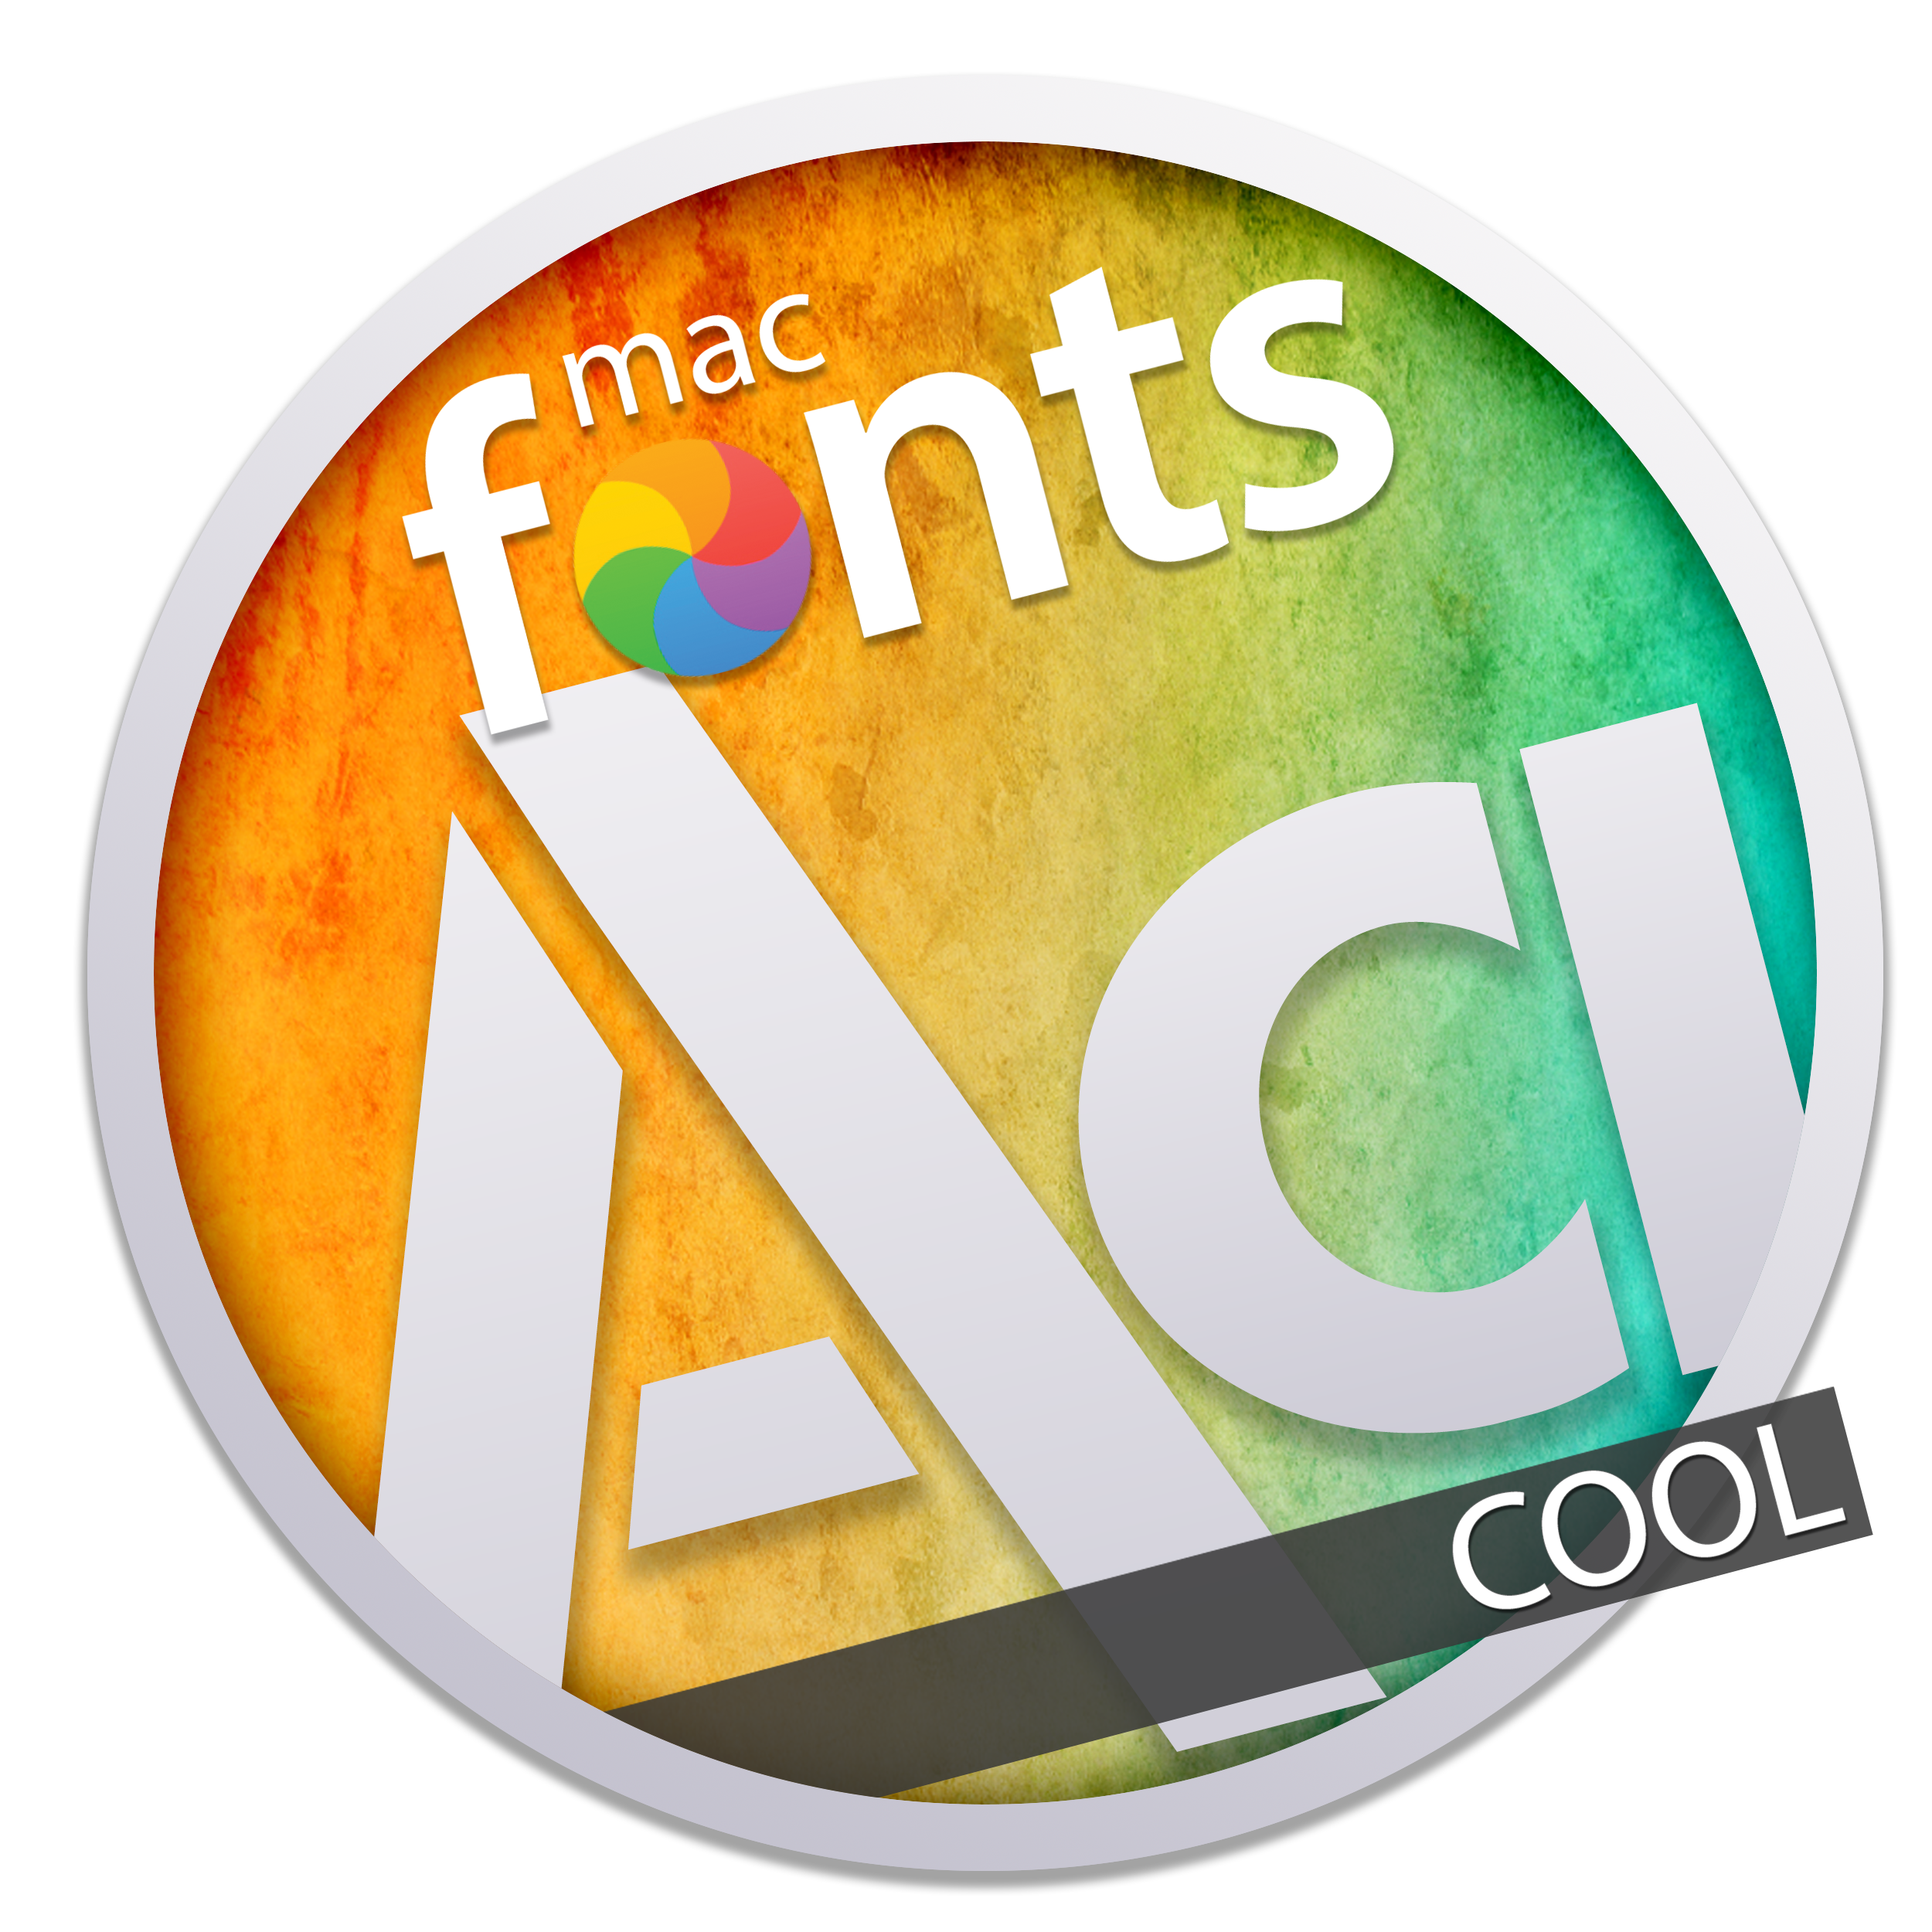 macFonts Cool icon